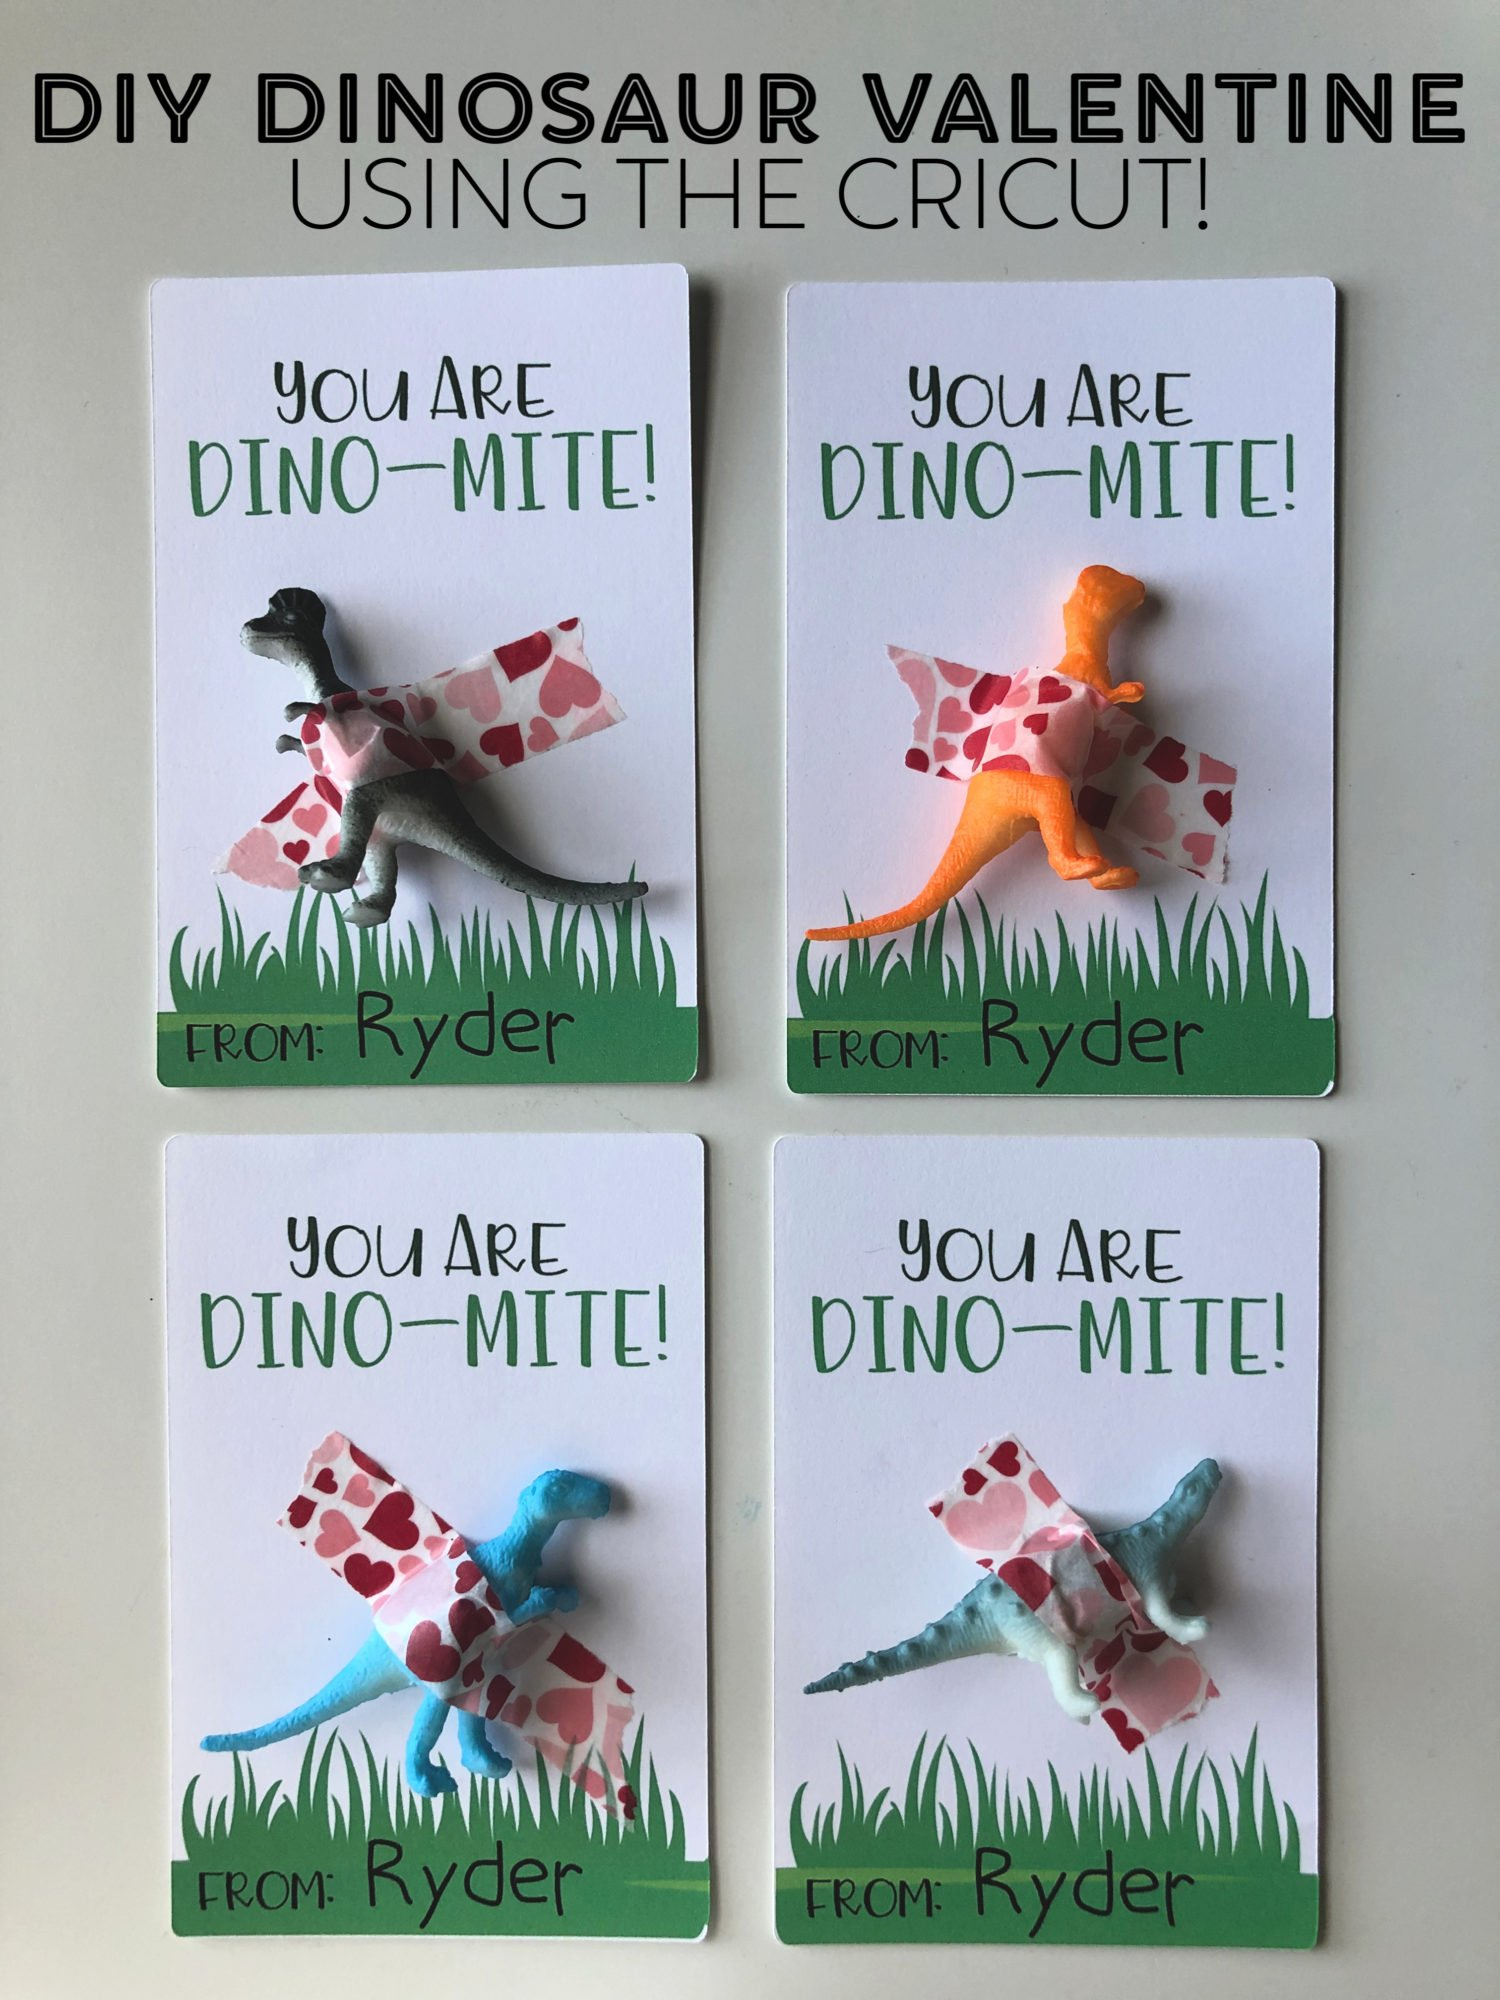 DIY Dinosaur Valentine using the Cricut